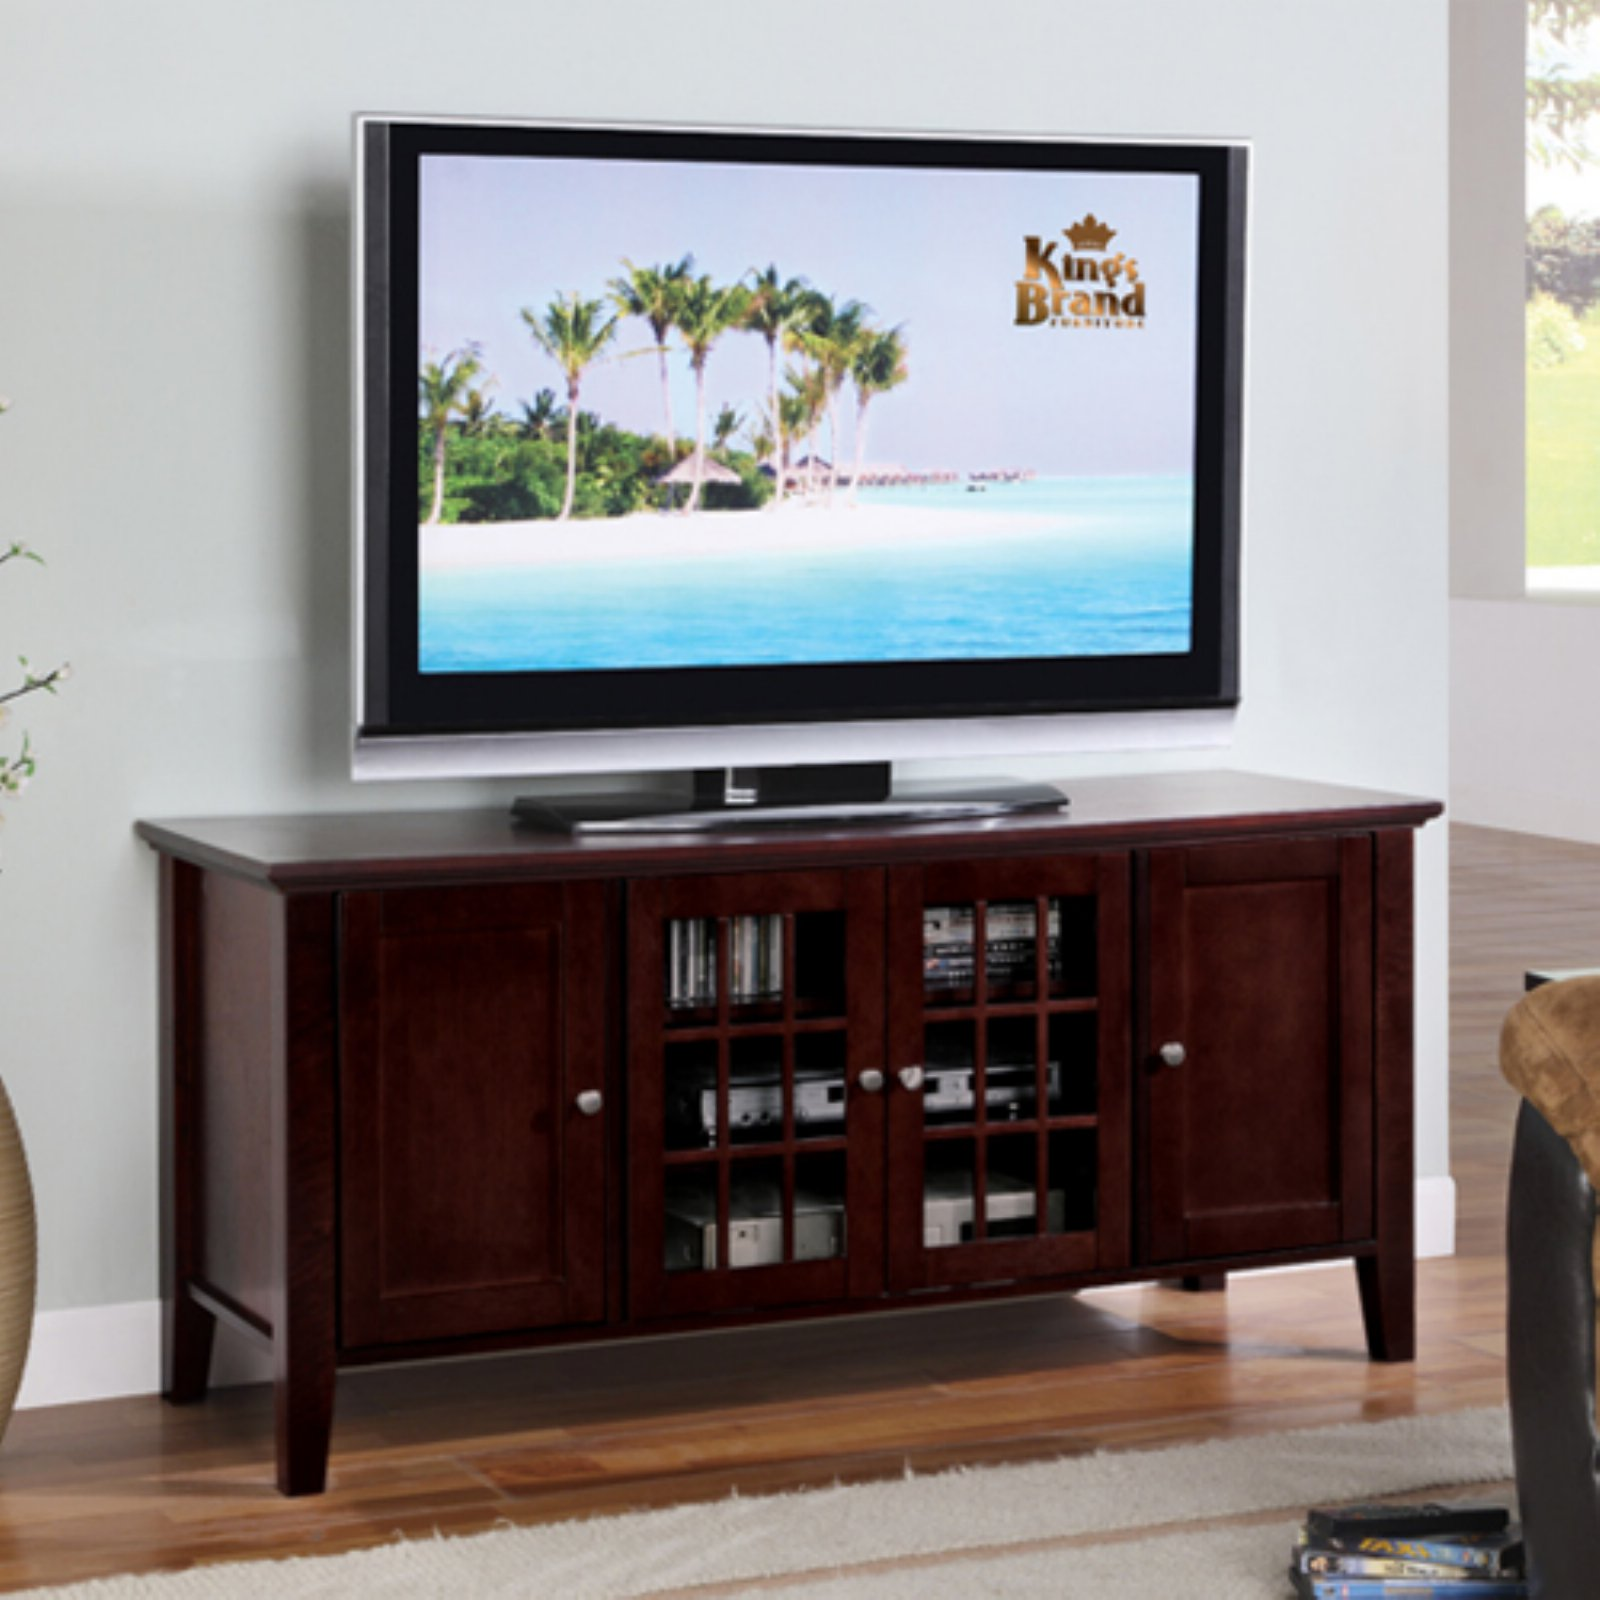 K&B Furniture 54 in. TV Stand